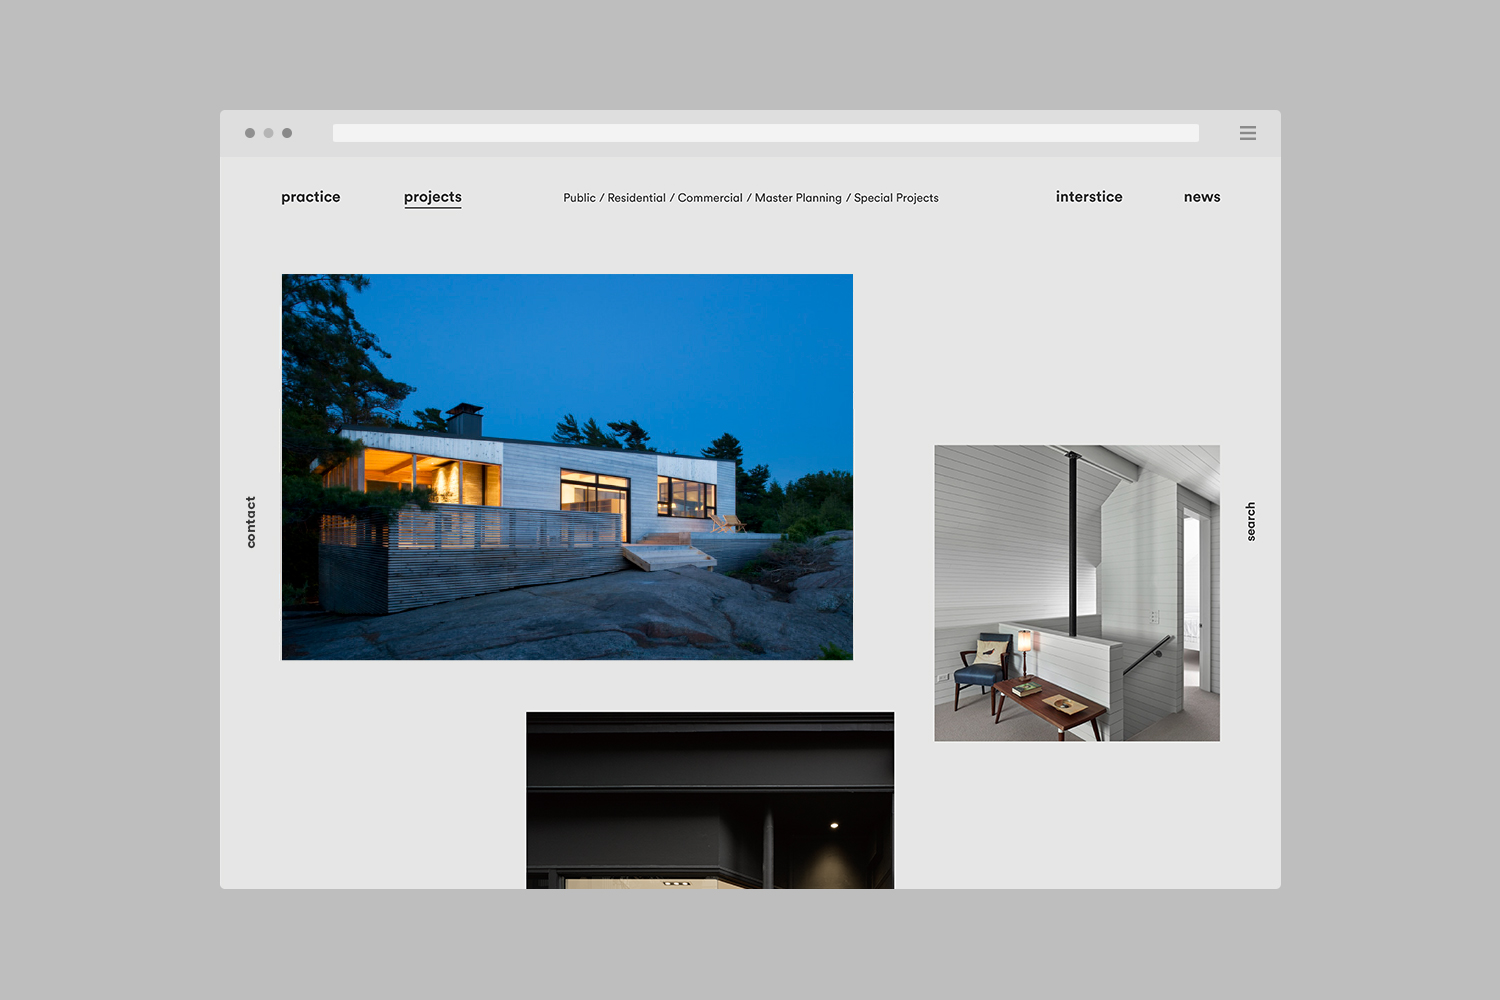 Brand identity and website by Toronto-based graphic design studio Blok for Canadian architecture firm Superkül